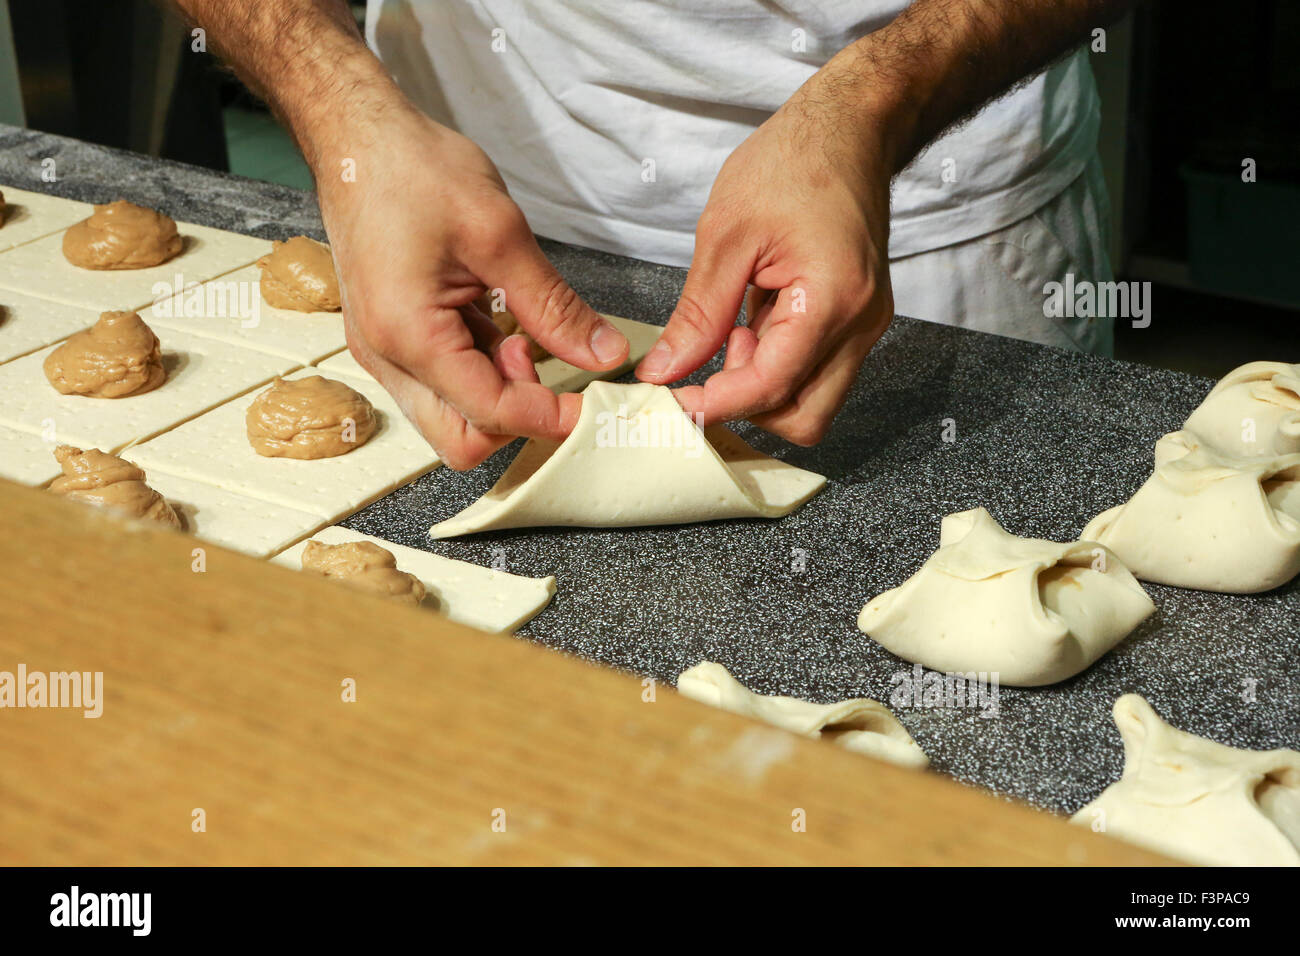 Baker working in a bakery - Stock Image